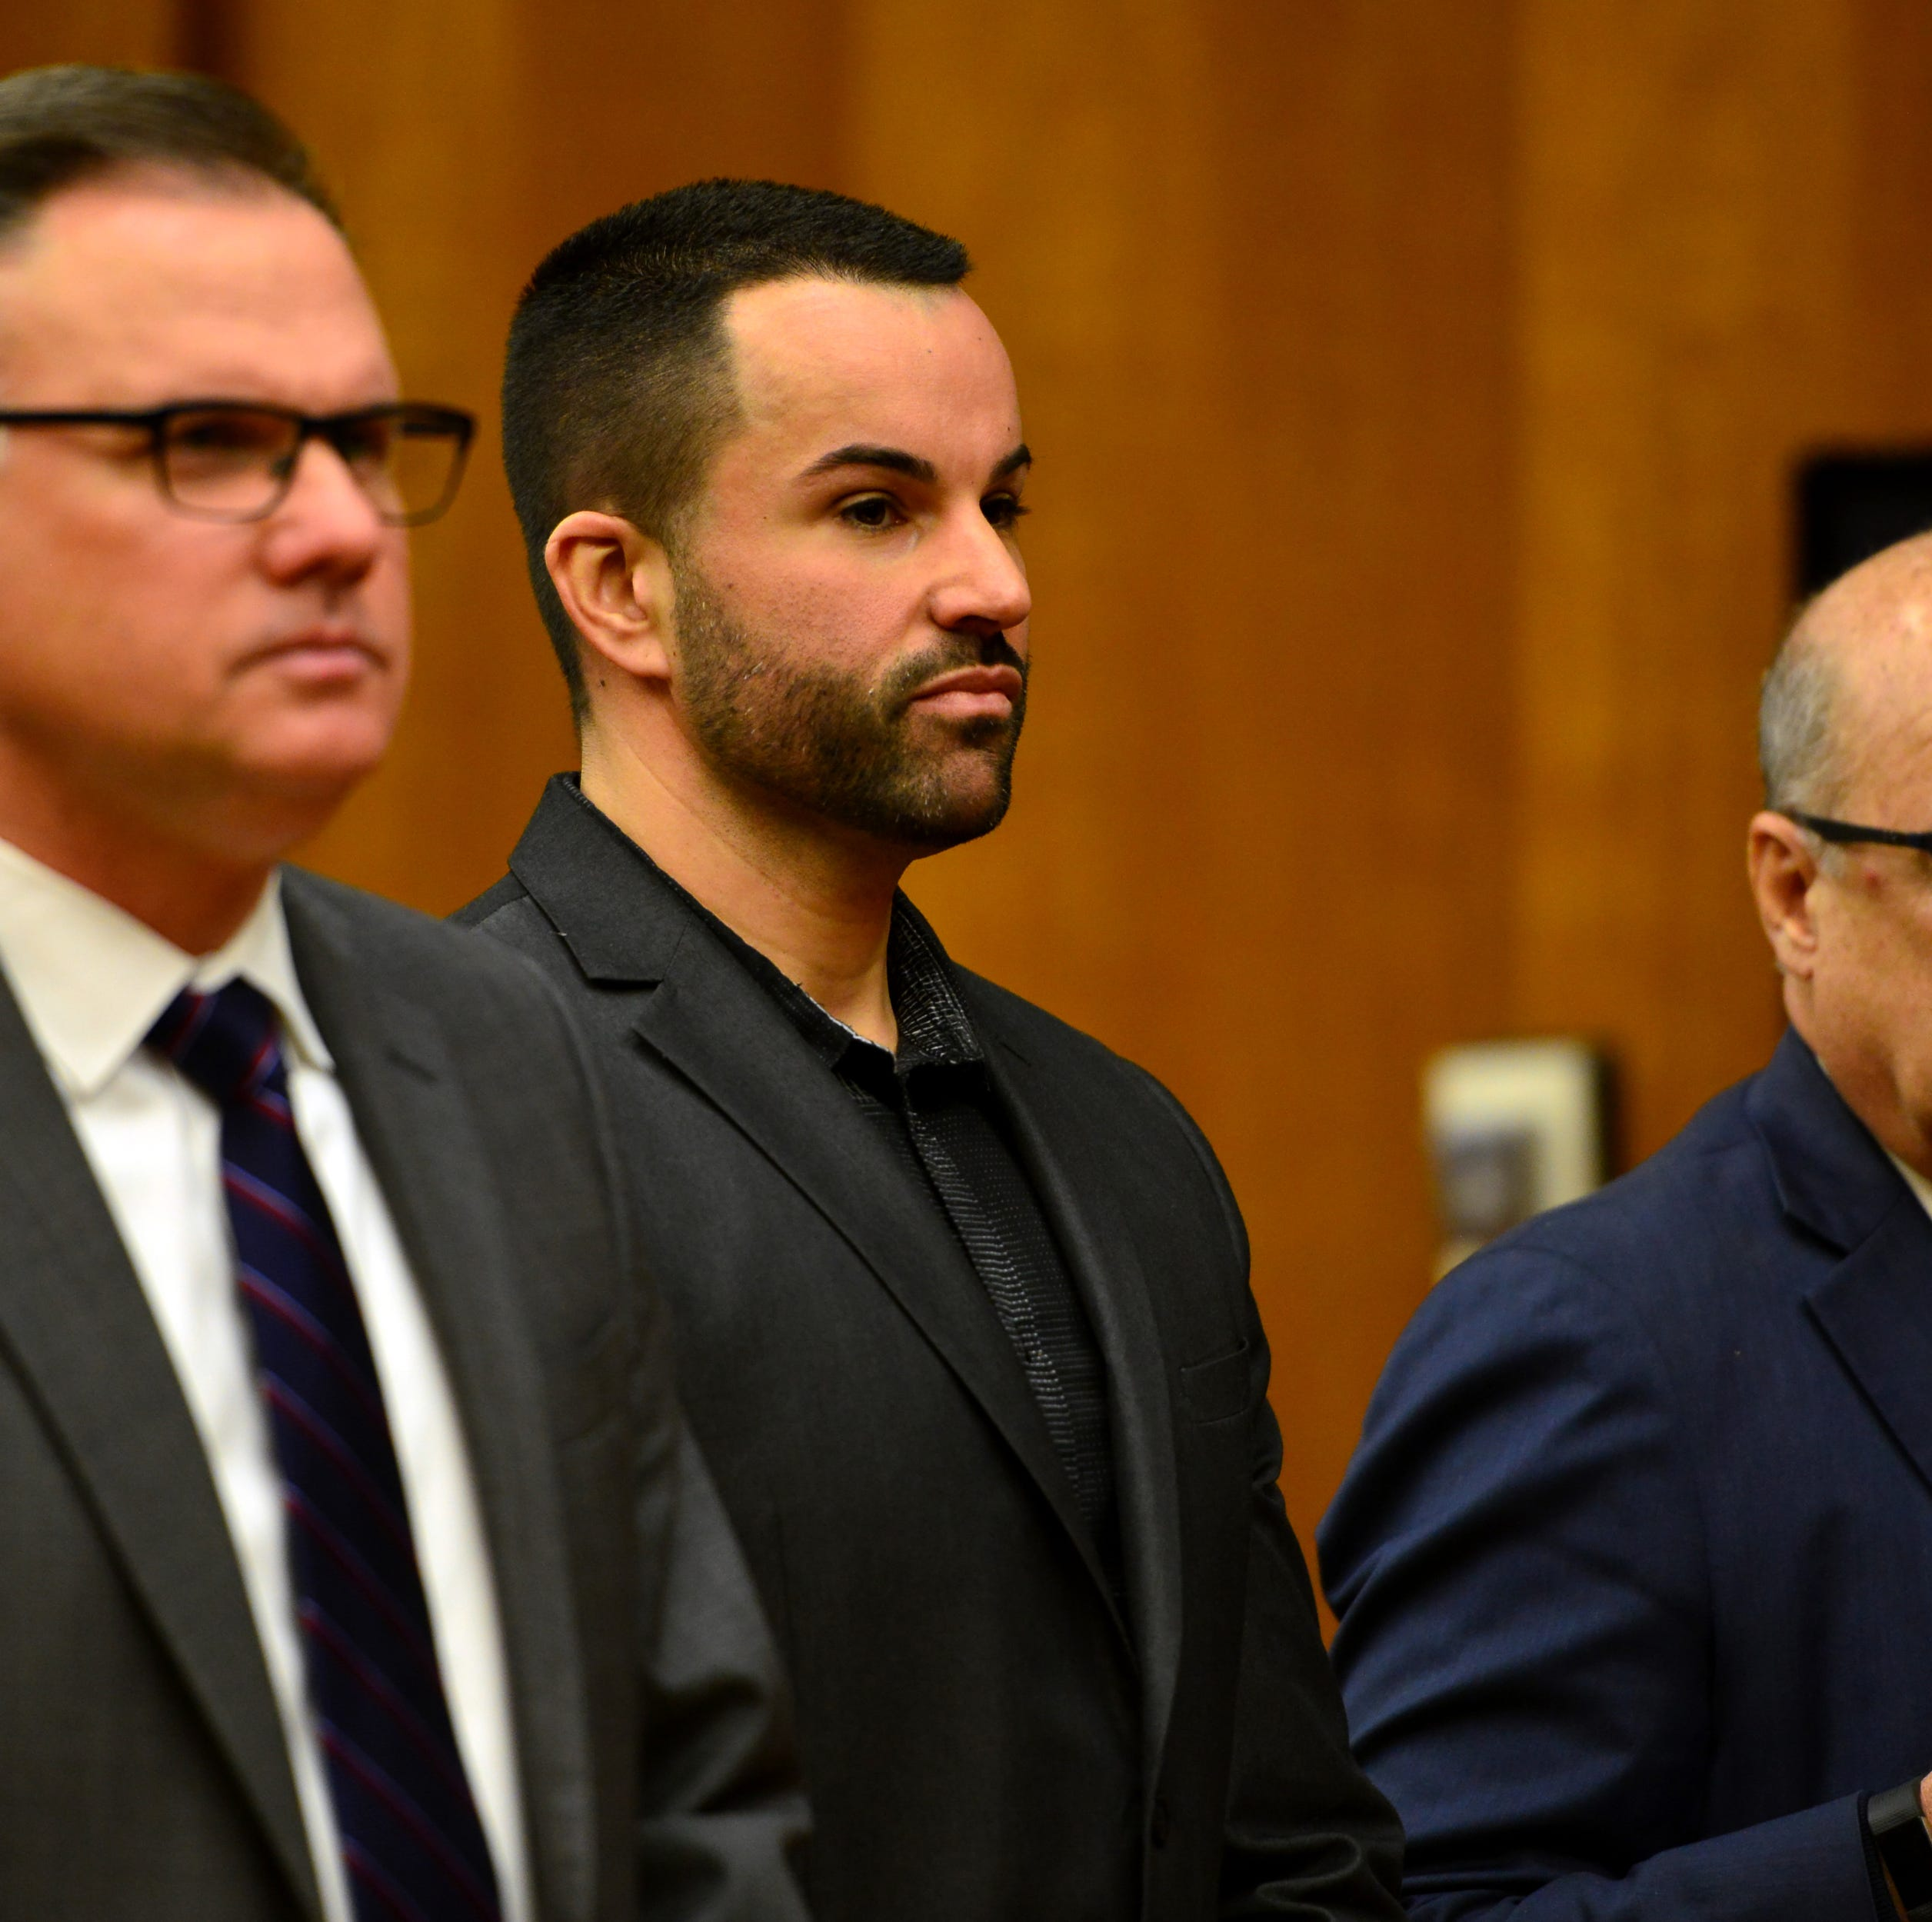 Palisades Park sergeant will go to trial on theft and misconduct charges